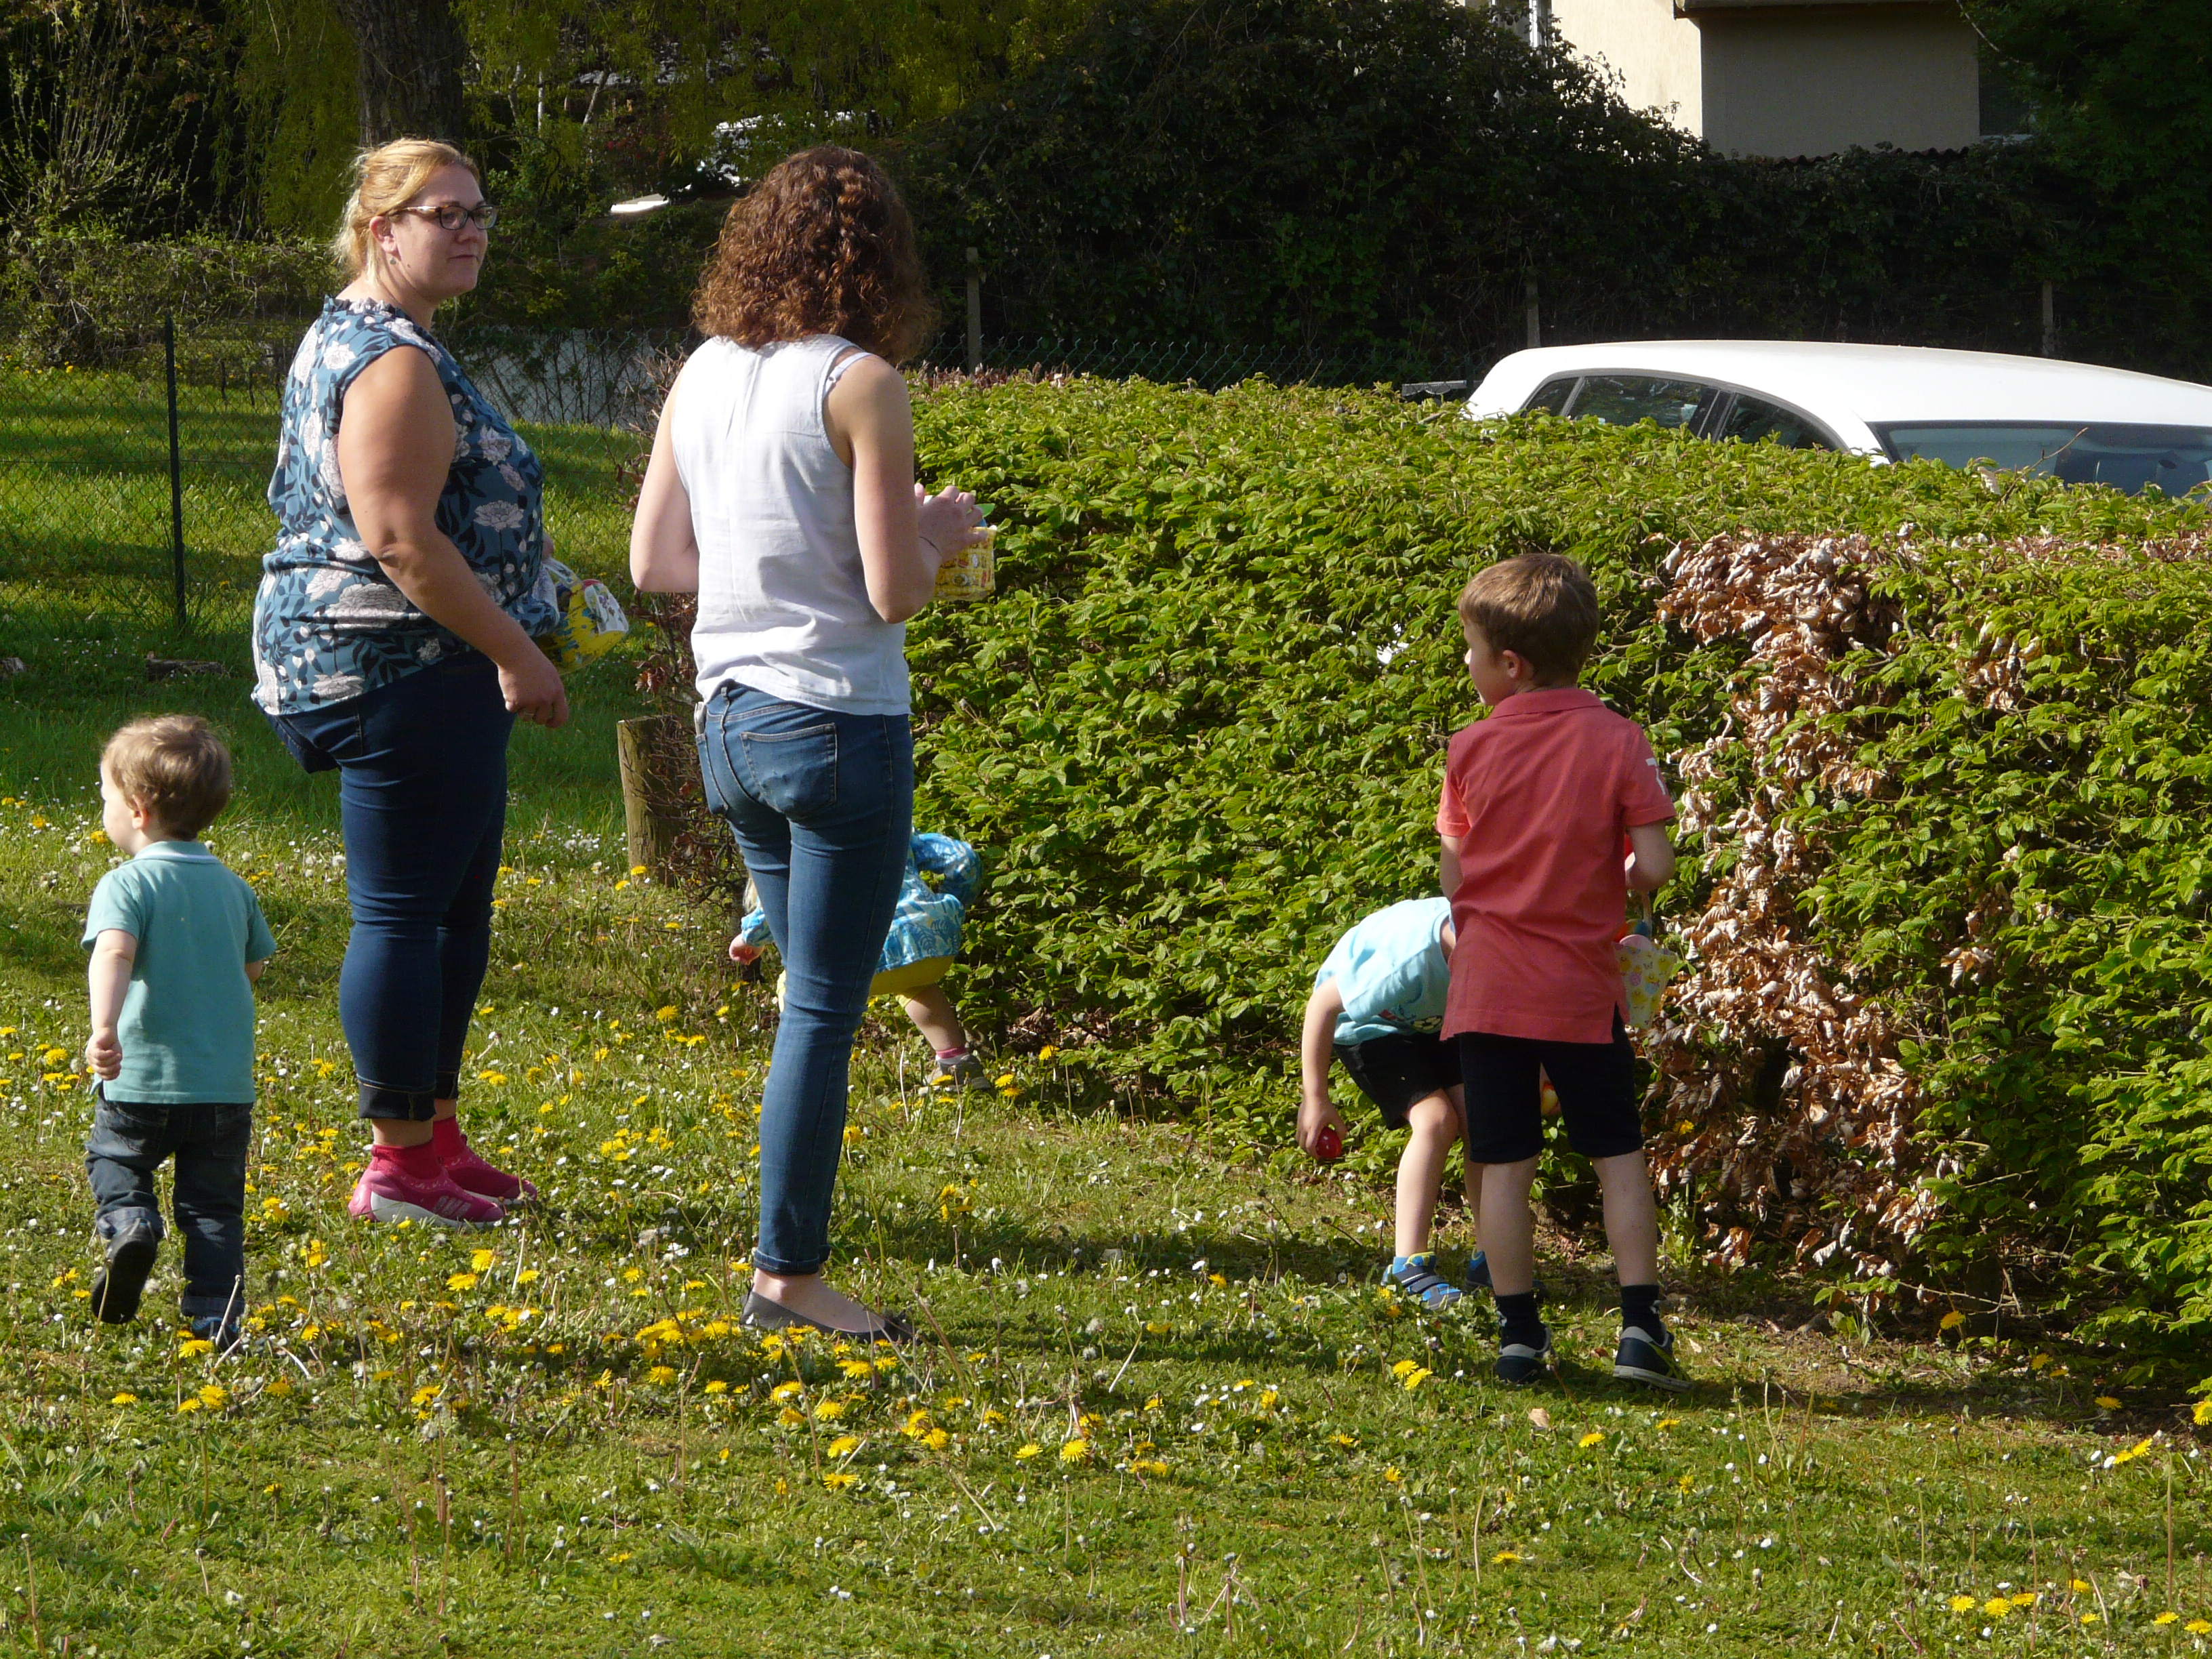 190422 chasse aux oeufs FR (8)